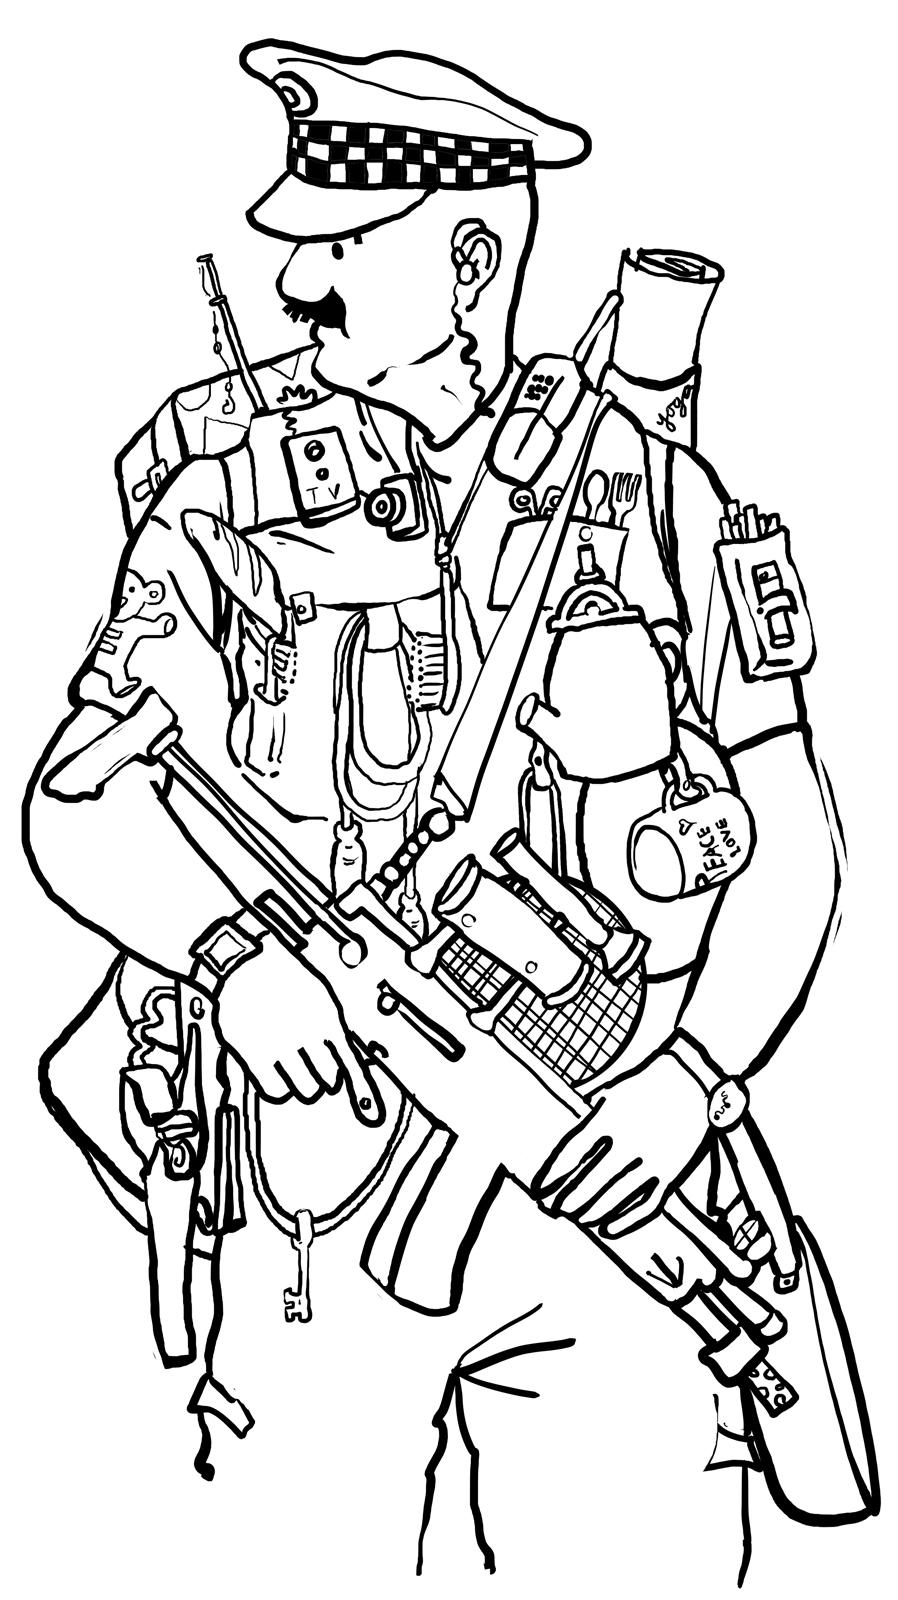 police officer drawing at getdrawings free download